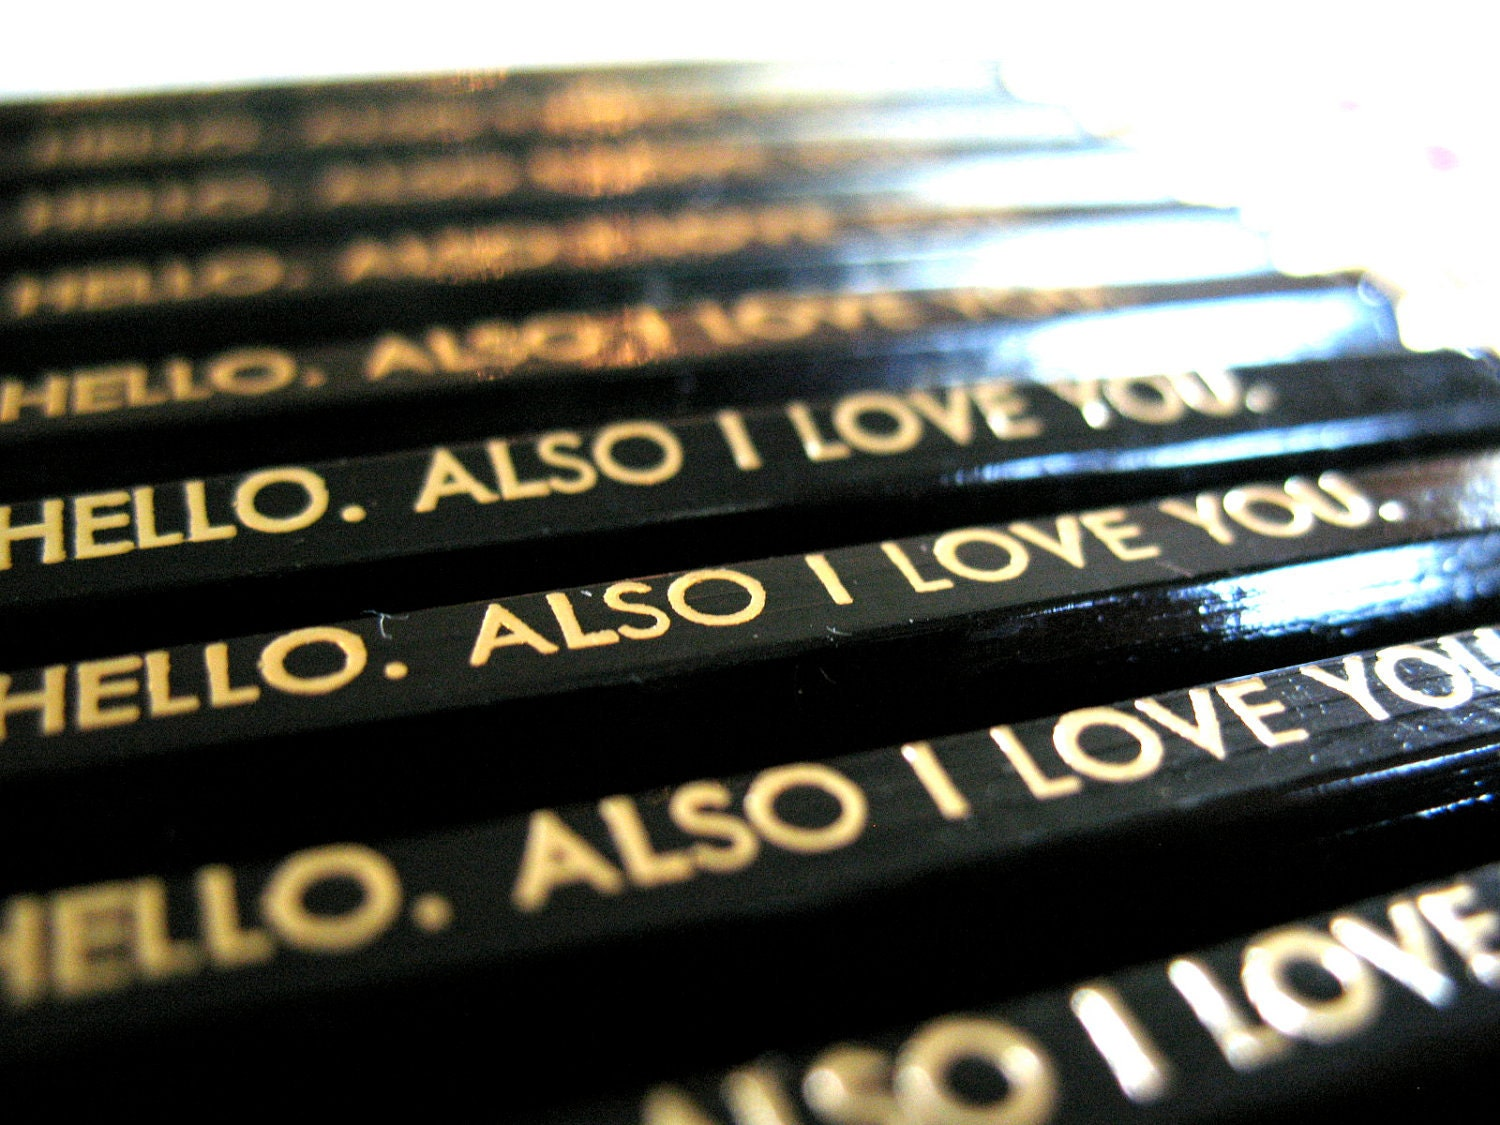 VALENTINE PENCILS (6) - Hello. Also I love you - black and gold GRAPHITE hex pencils w/ stamped craft pencil case